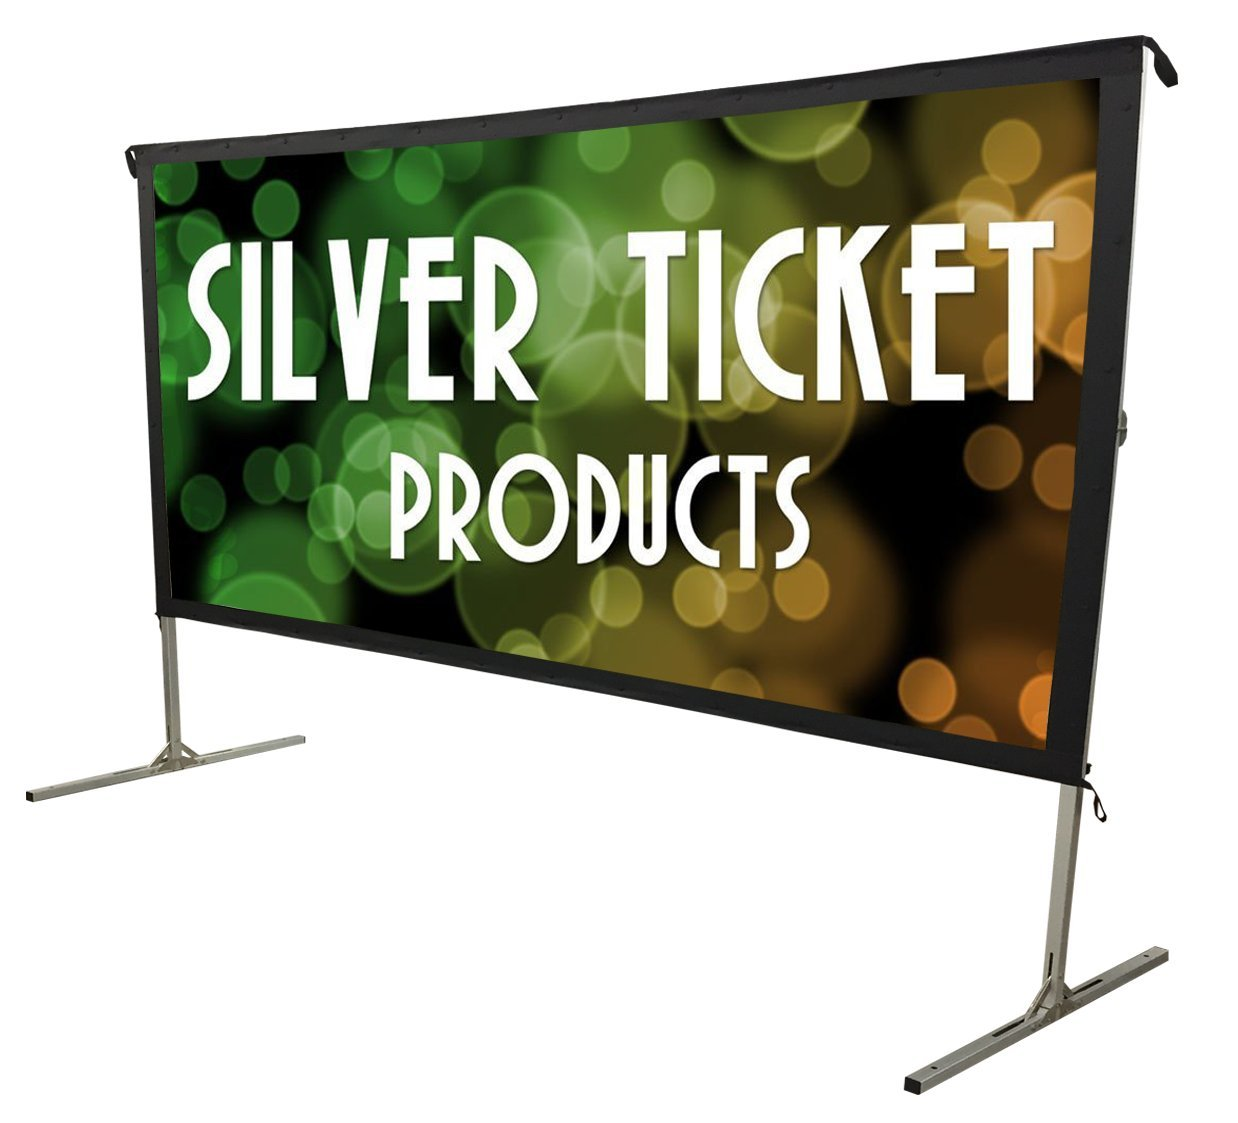 STO-169120 Silver Ticket Indoor/Outdoor 120'' Diagonal 16:9 4K Ultra HD Ready HDTV Movie Projector Screen Front Projection White Material with Black Back (STO 16:9, 120) by Silver Ticket Products